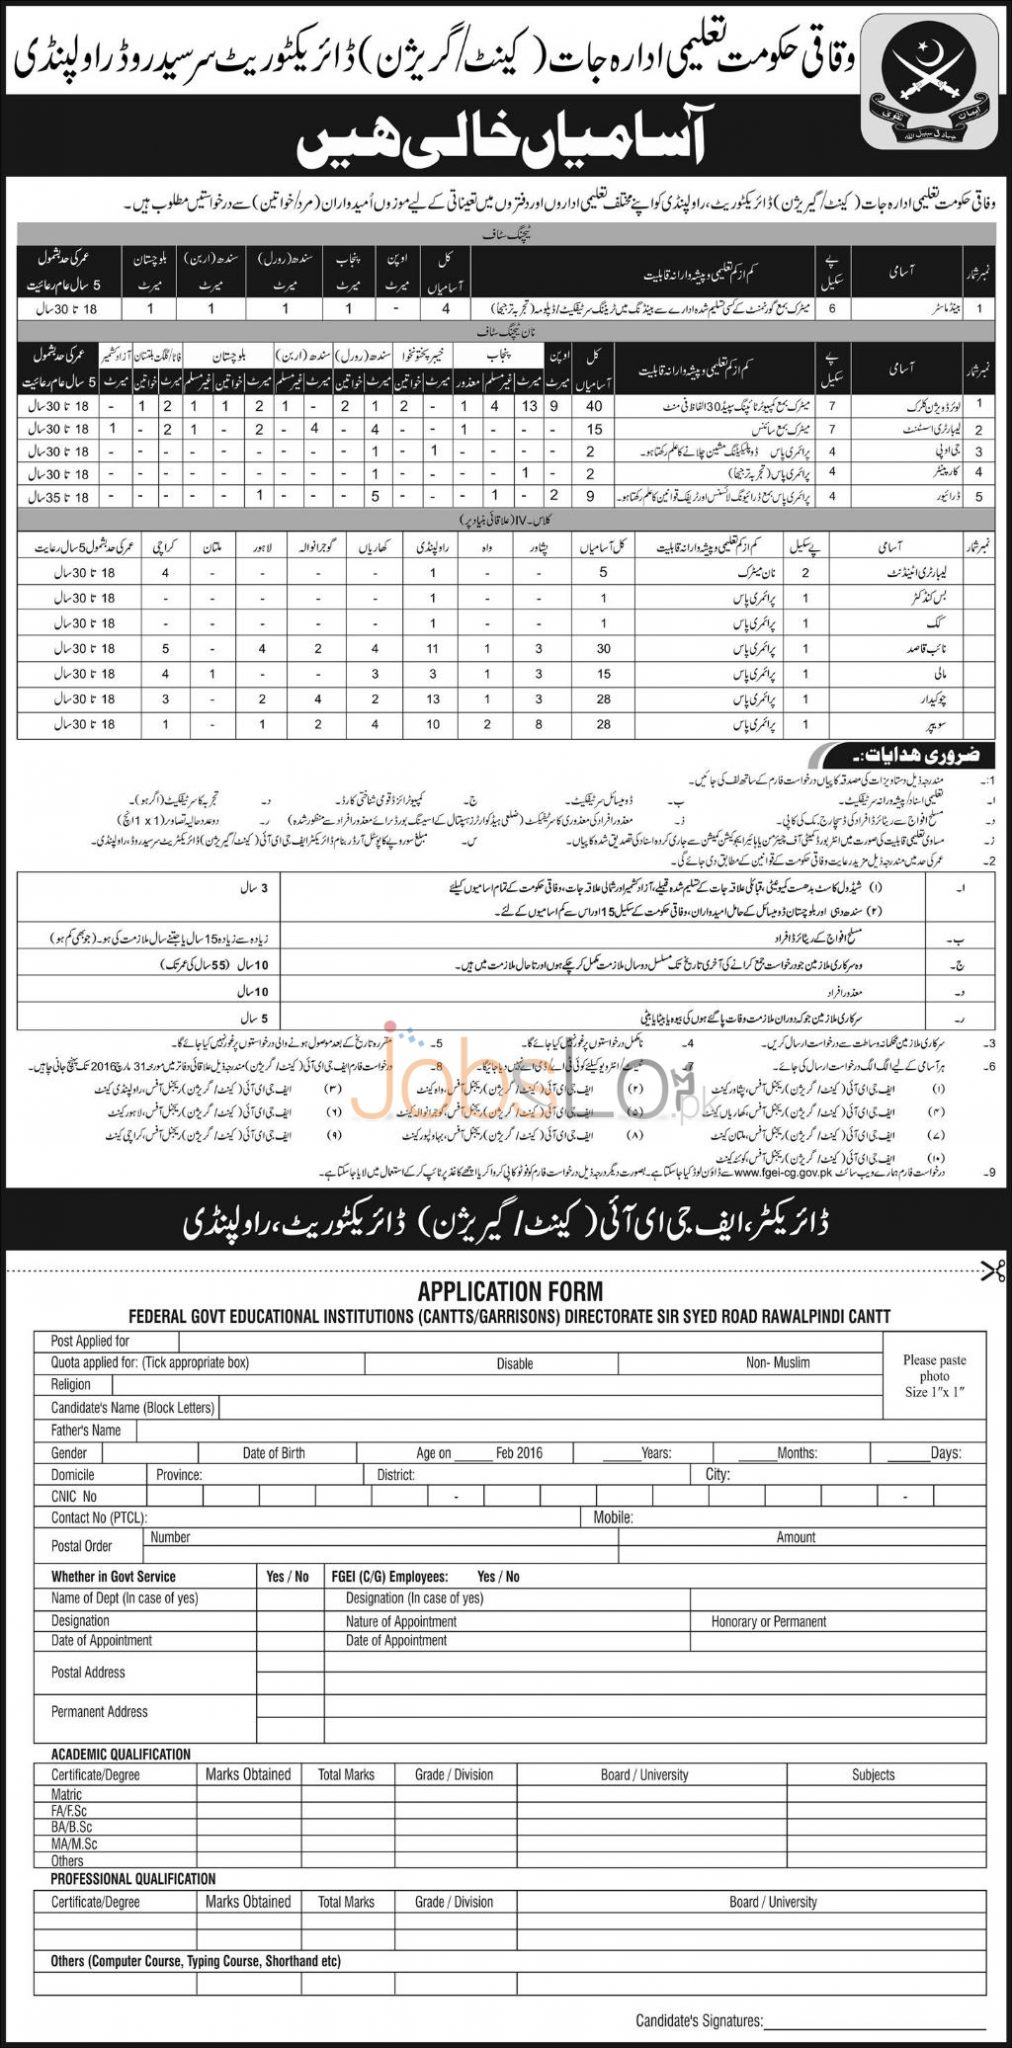 Recruitment Offers in Federal Govt Educational Institute 16 March 2016 Application Form Last Date